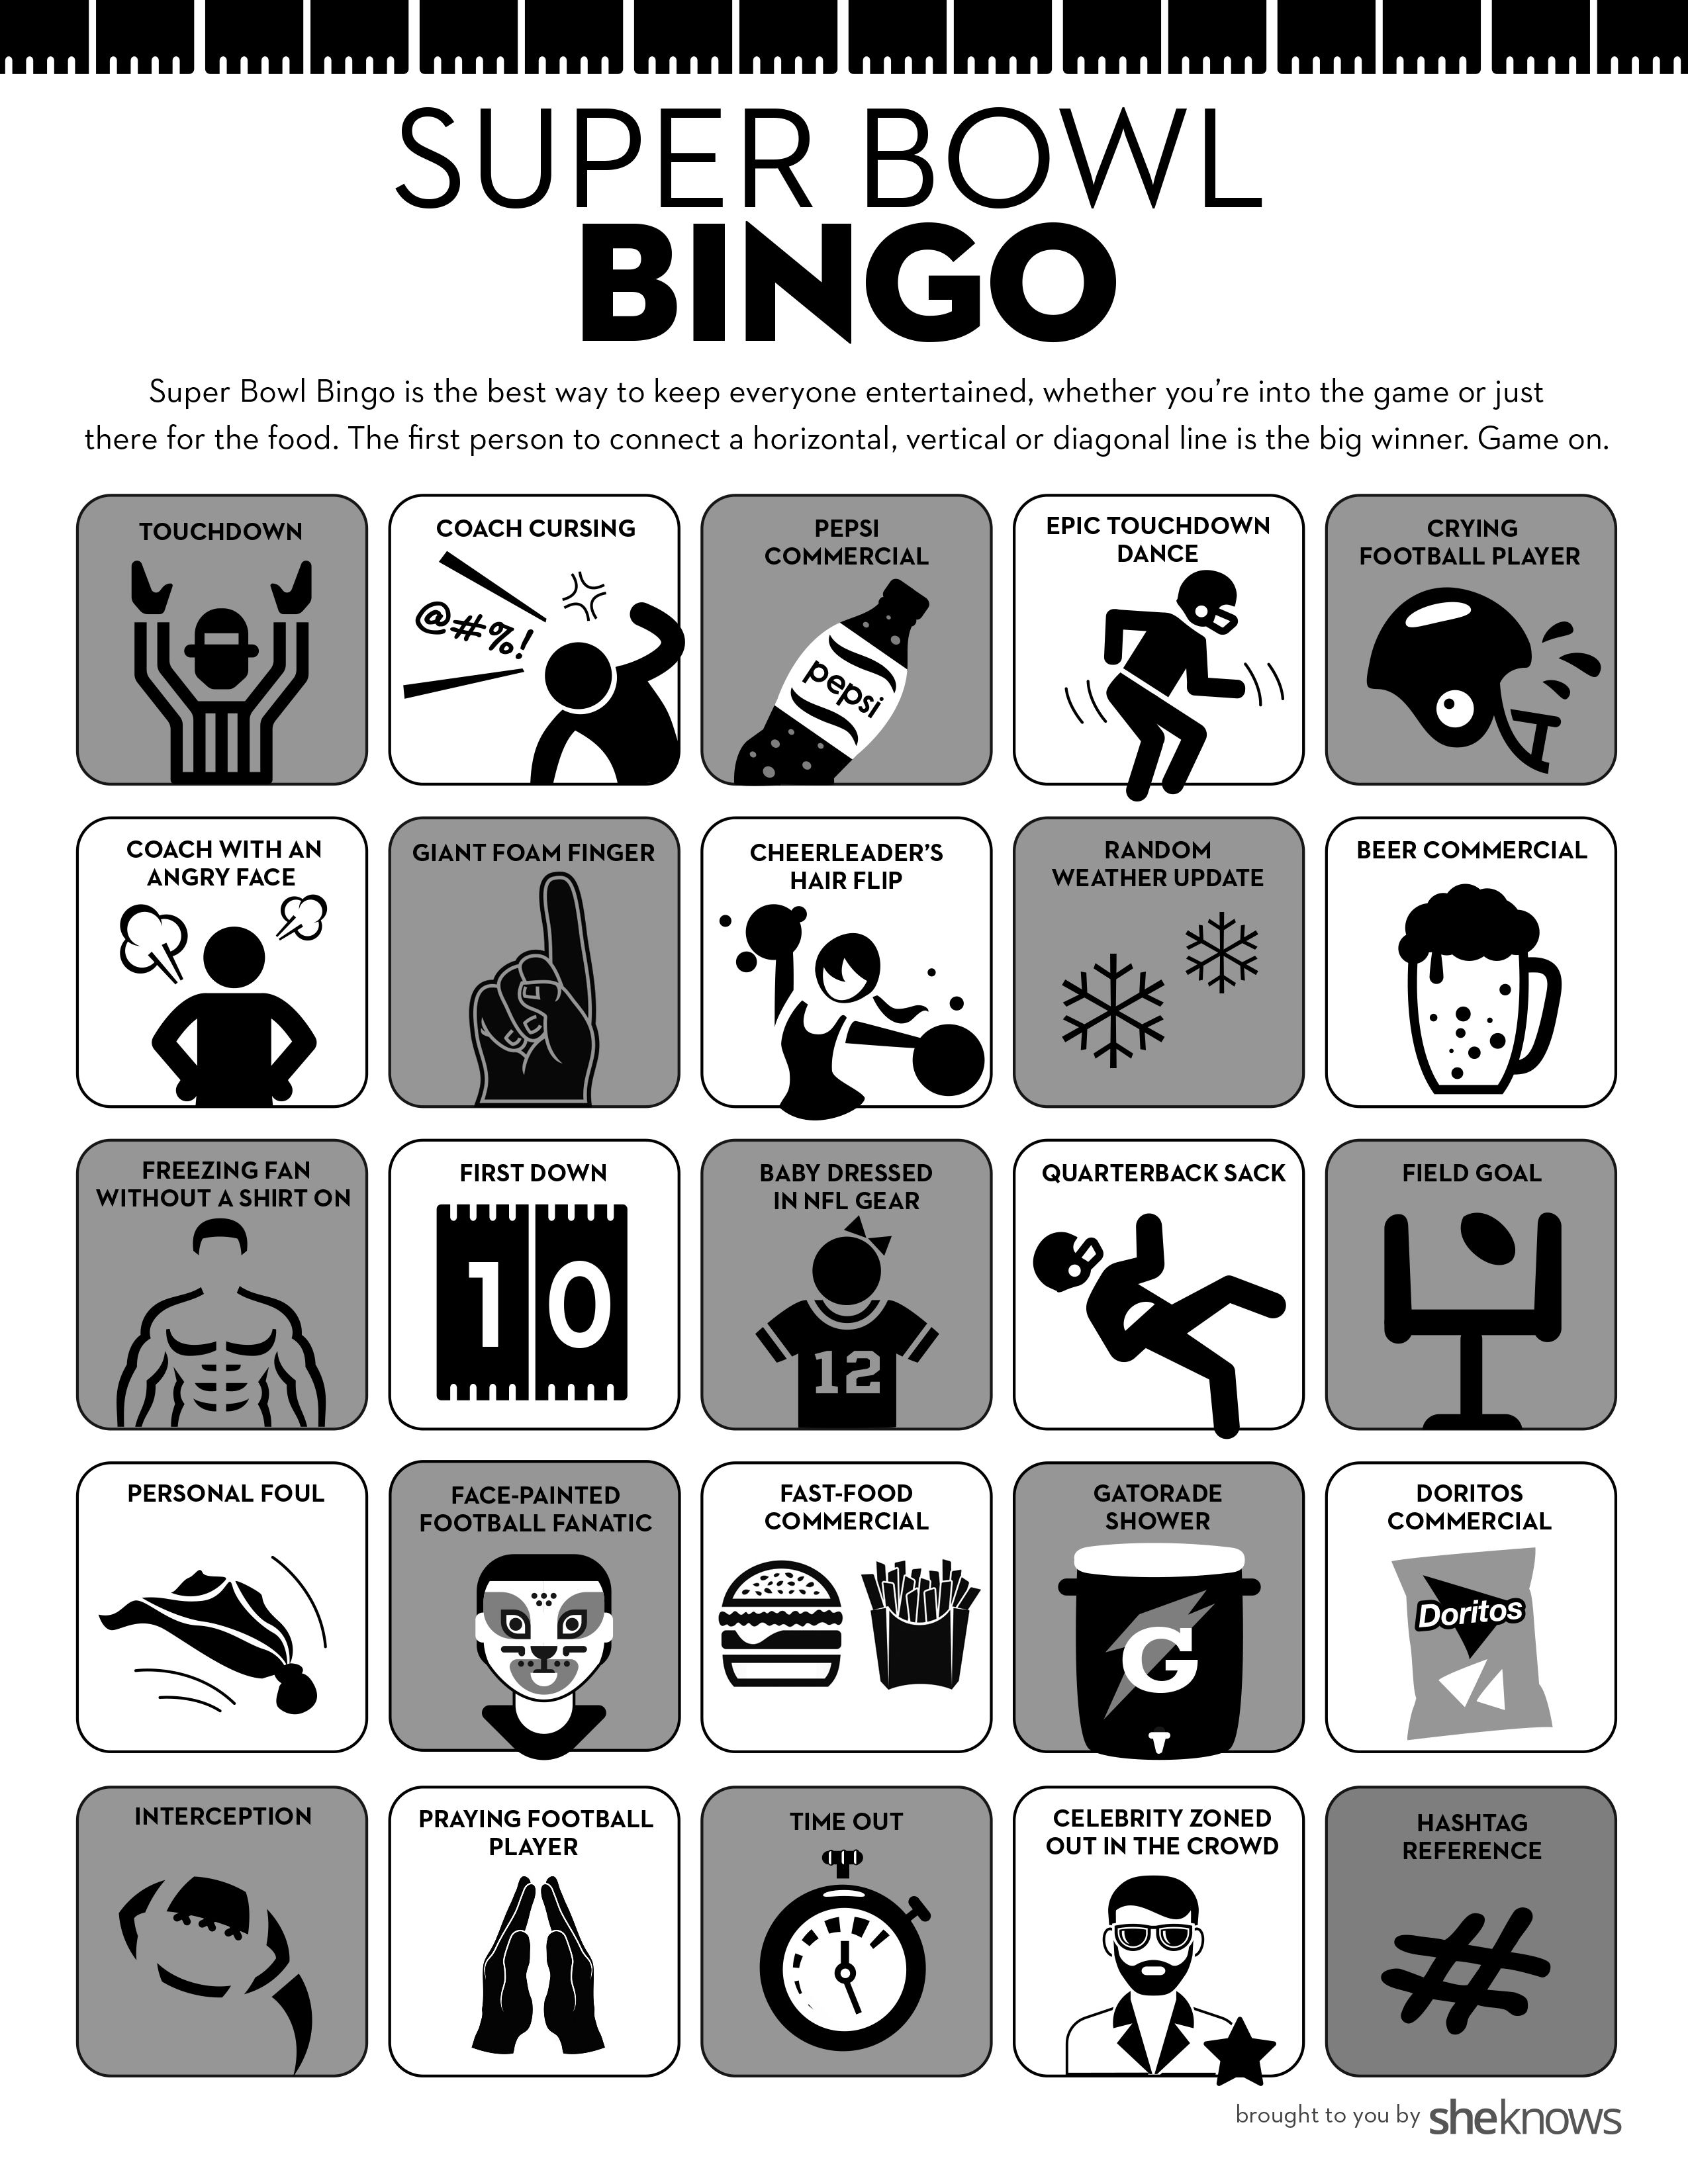 photograph regarding Printable Super Bowl Bingo Cards called Printable Tremendous Bowl Bingo playing cards preserve every person intrigued